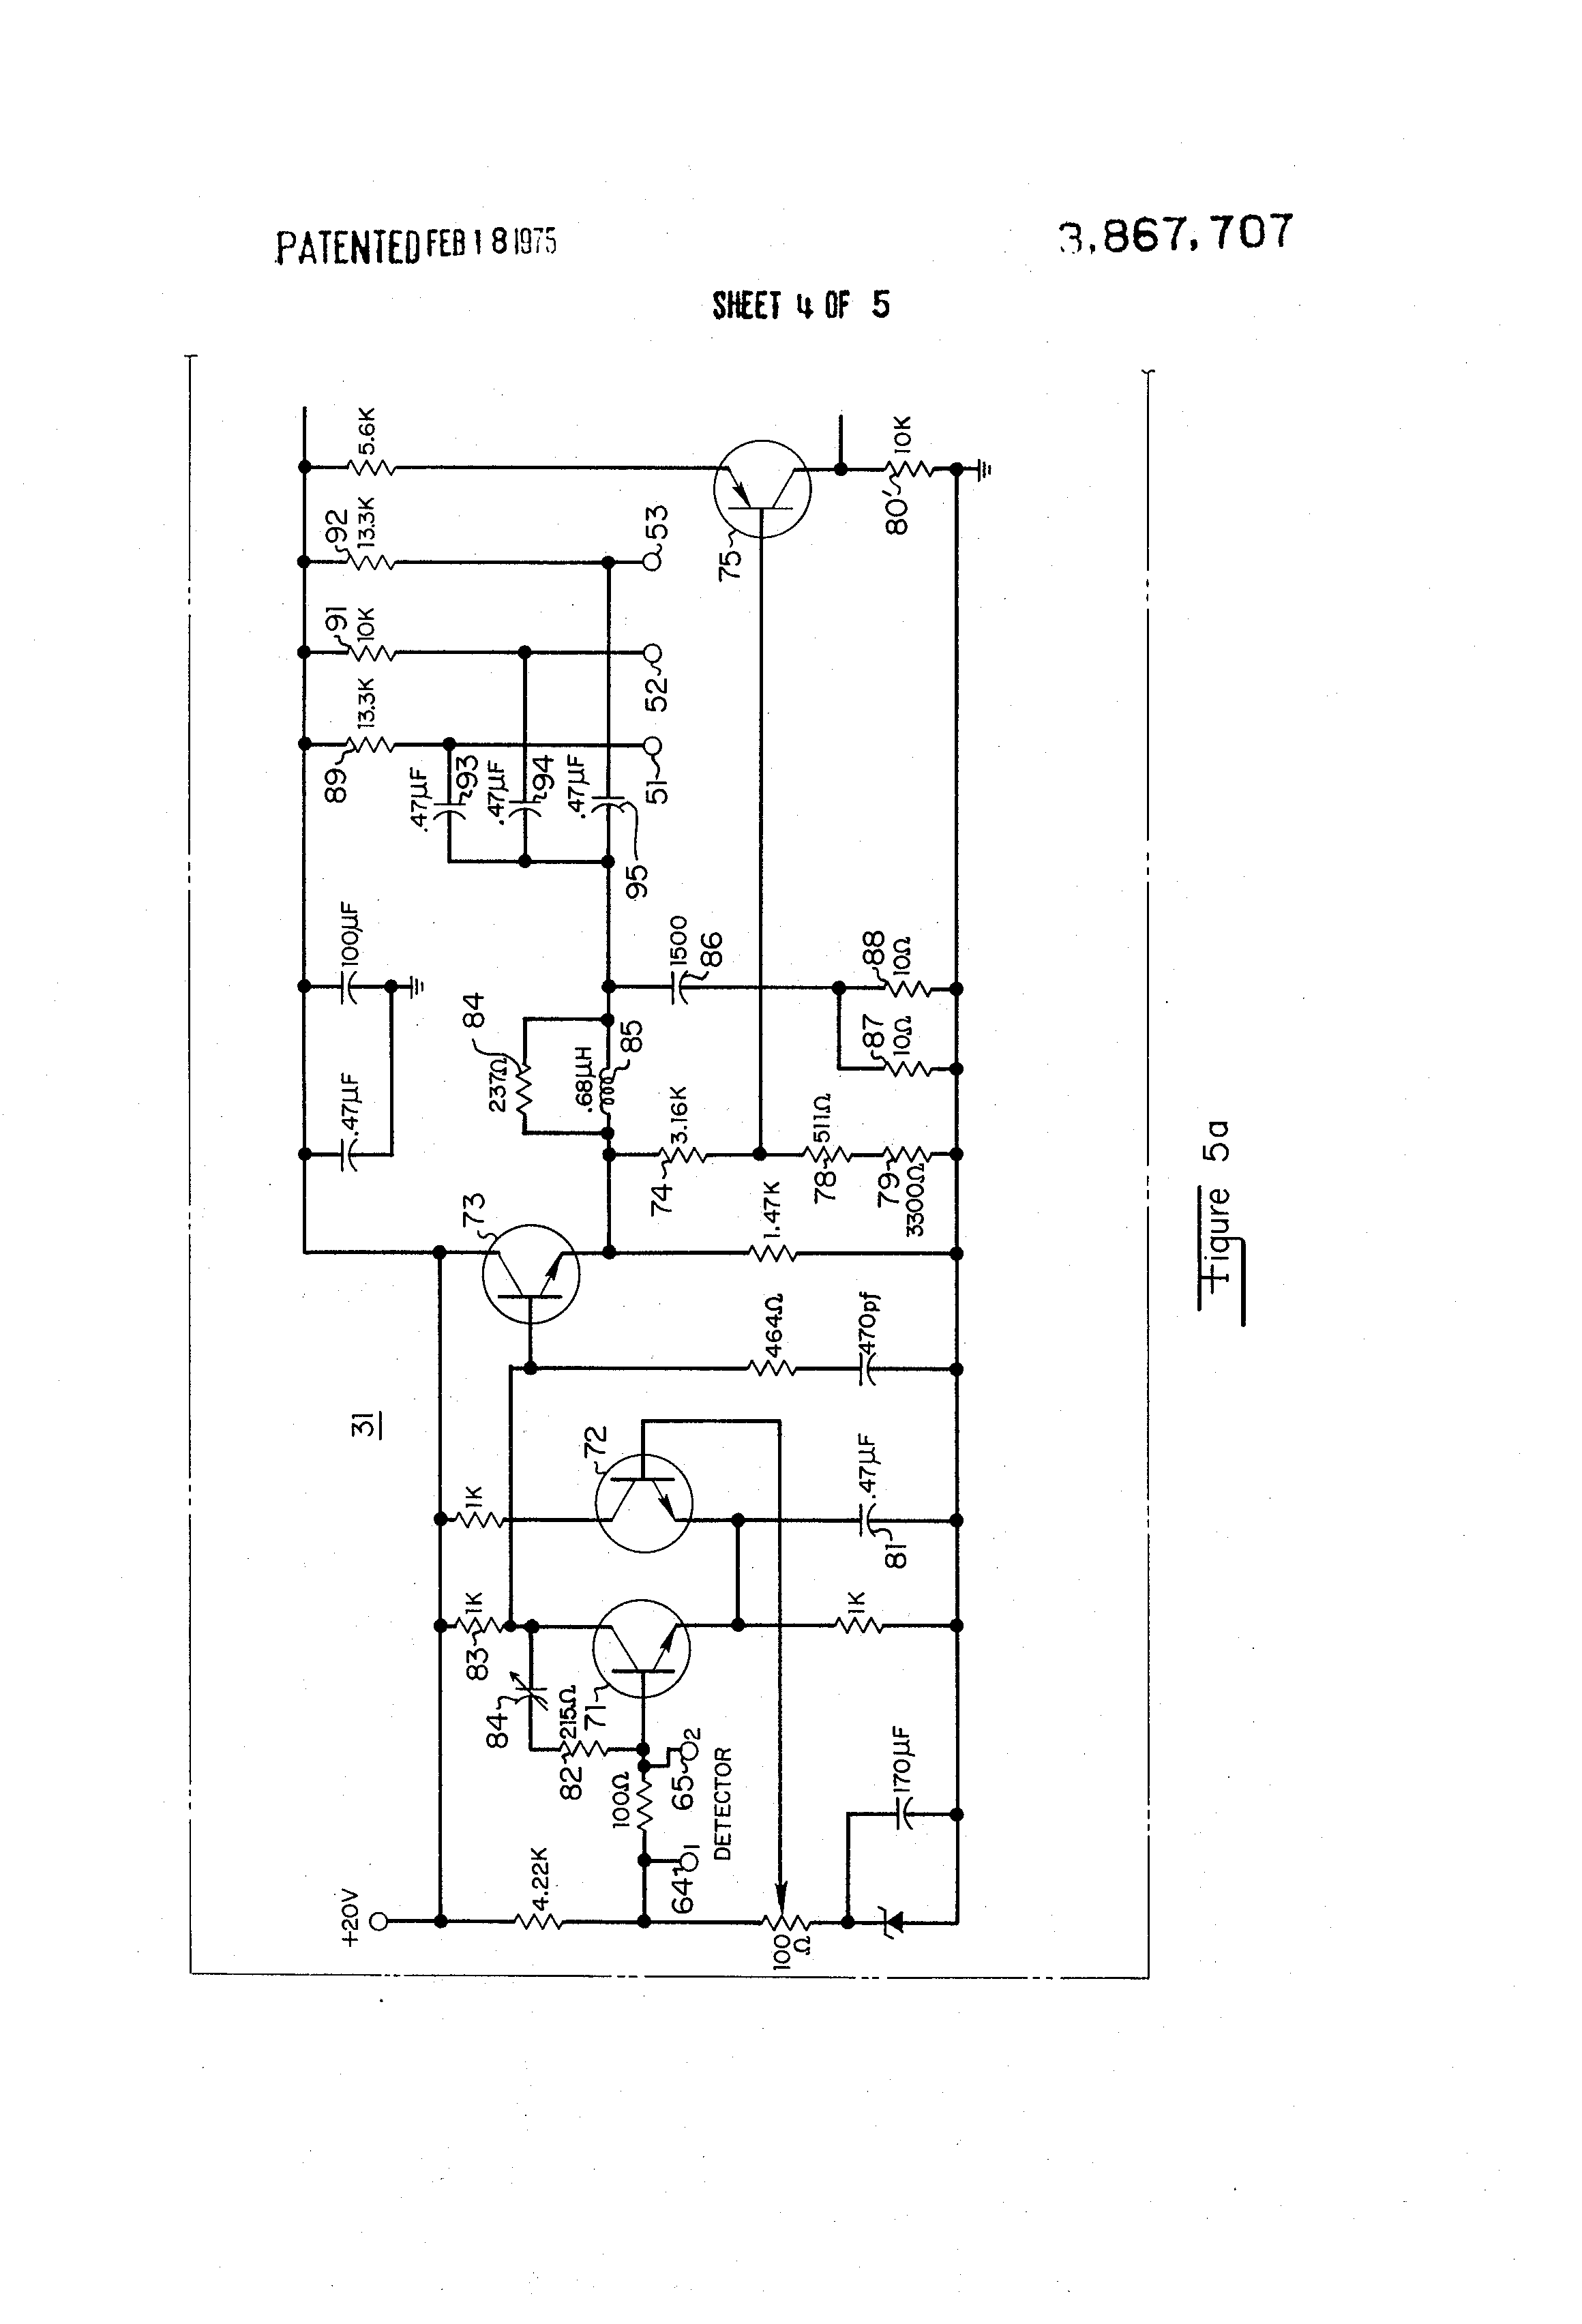 Brevet Us3867707 Controlled Signal Receiver Google Brevets Tuned Radio Frequency Trf Circuit Diagram Patent Drawing